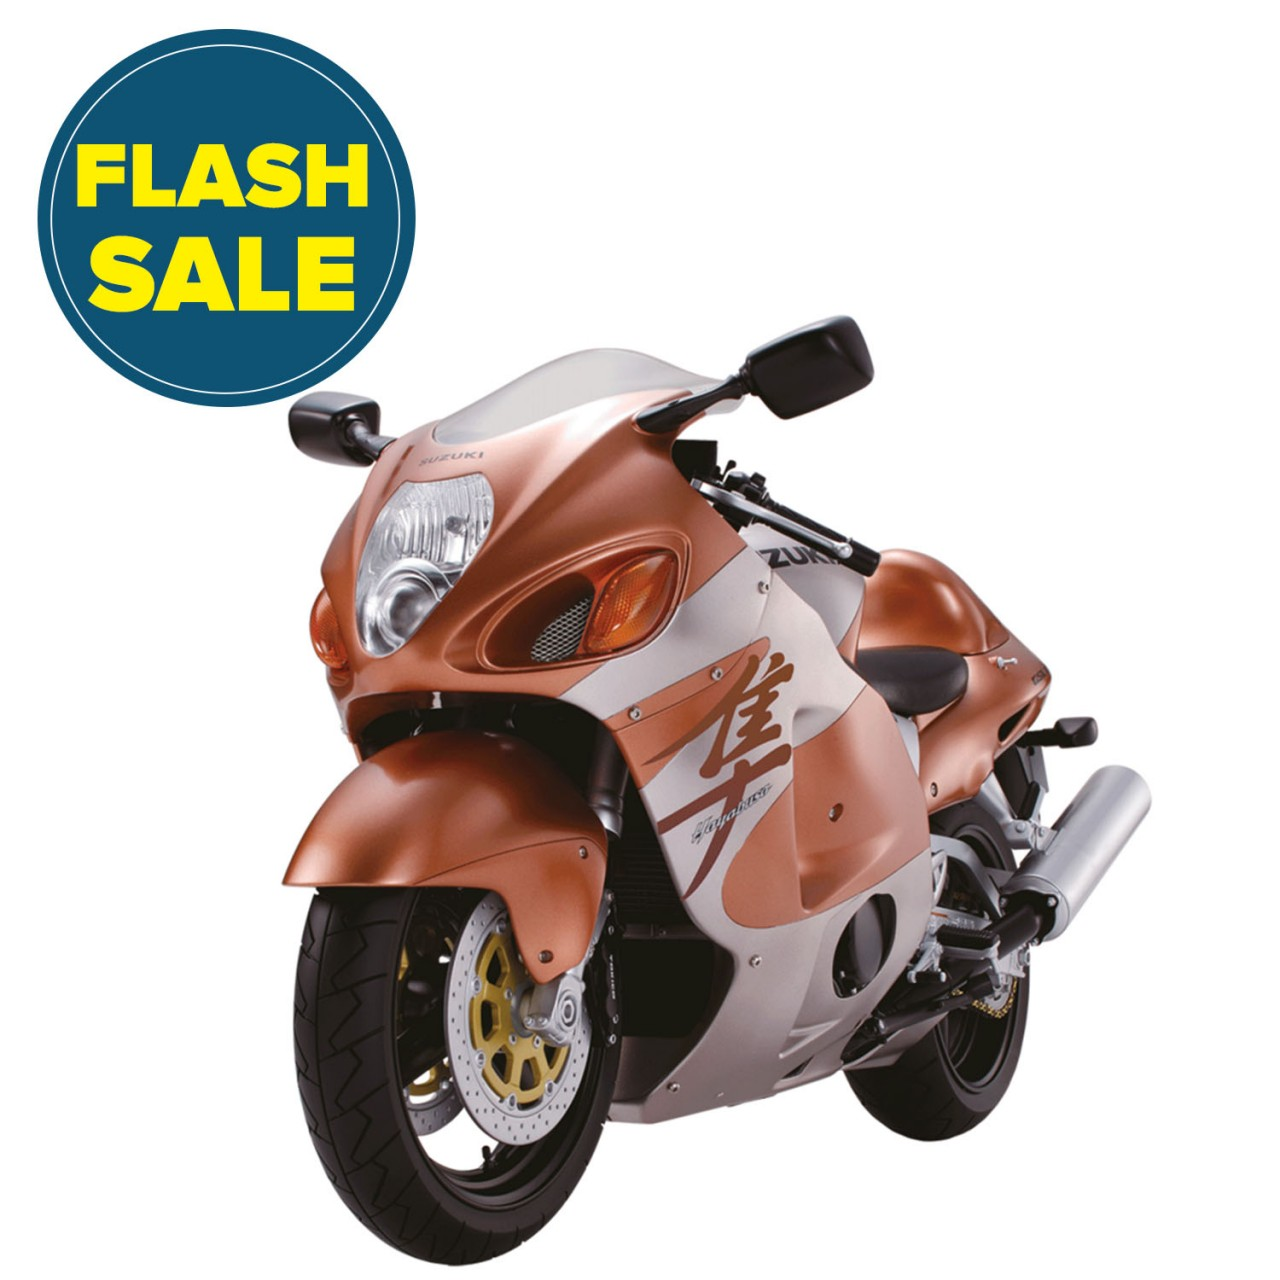 suzuki gsx 1300r hayabusa motorcycle model full kit | modelspace